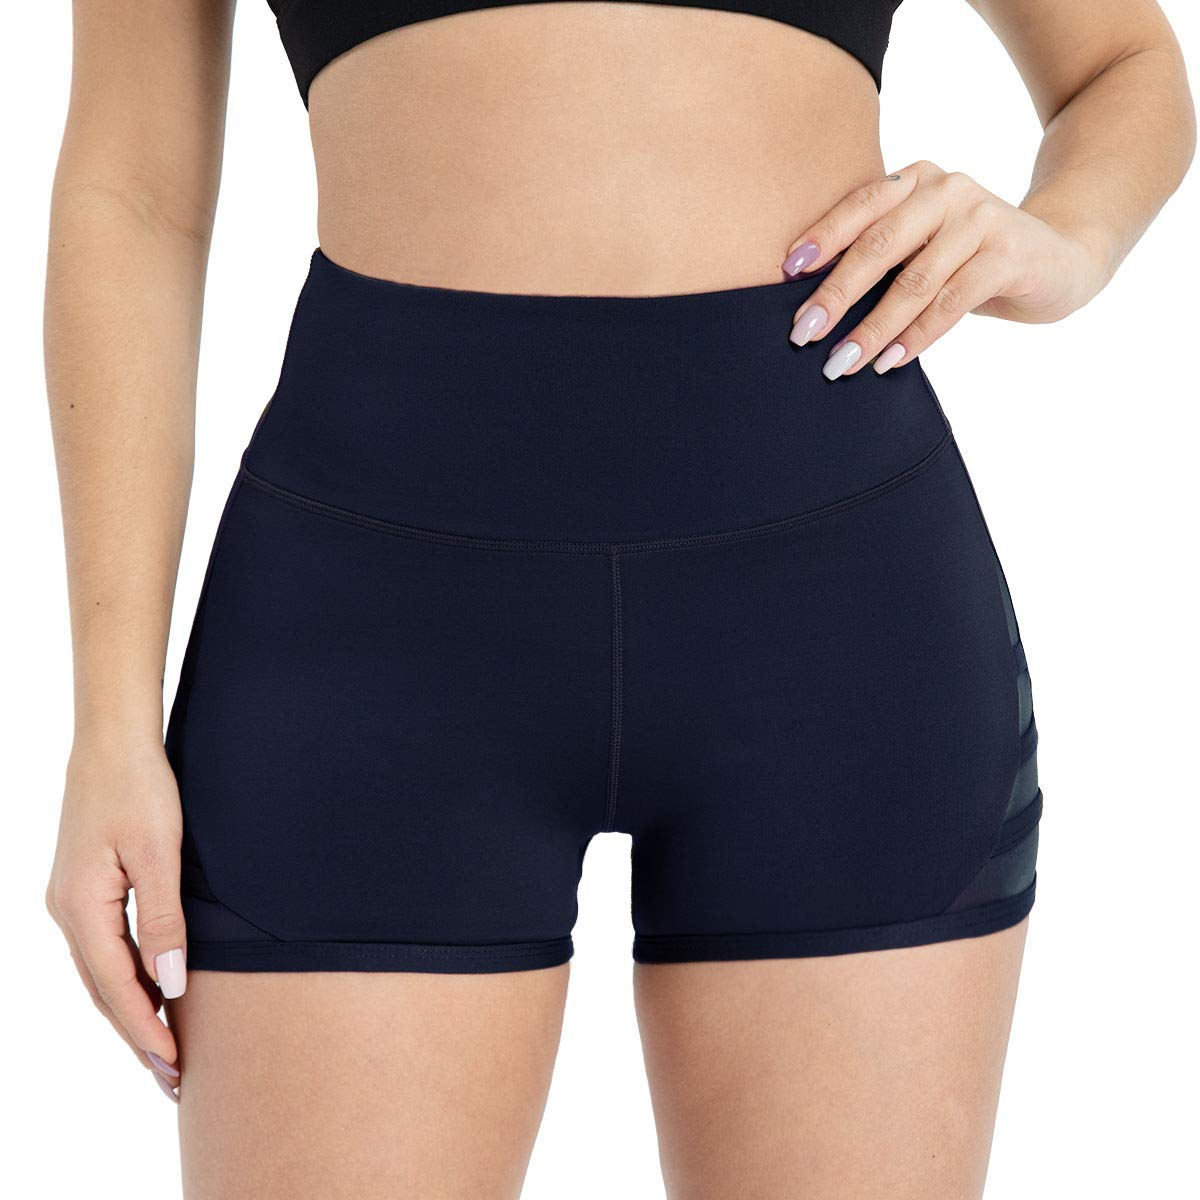 Dielusa Workout Running Shorts for Women 4 Way Stretch Soft Exercise Gym Yoga Shorts XXL Navy Blue